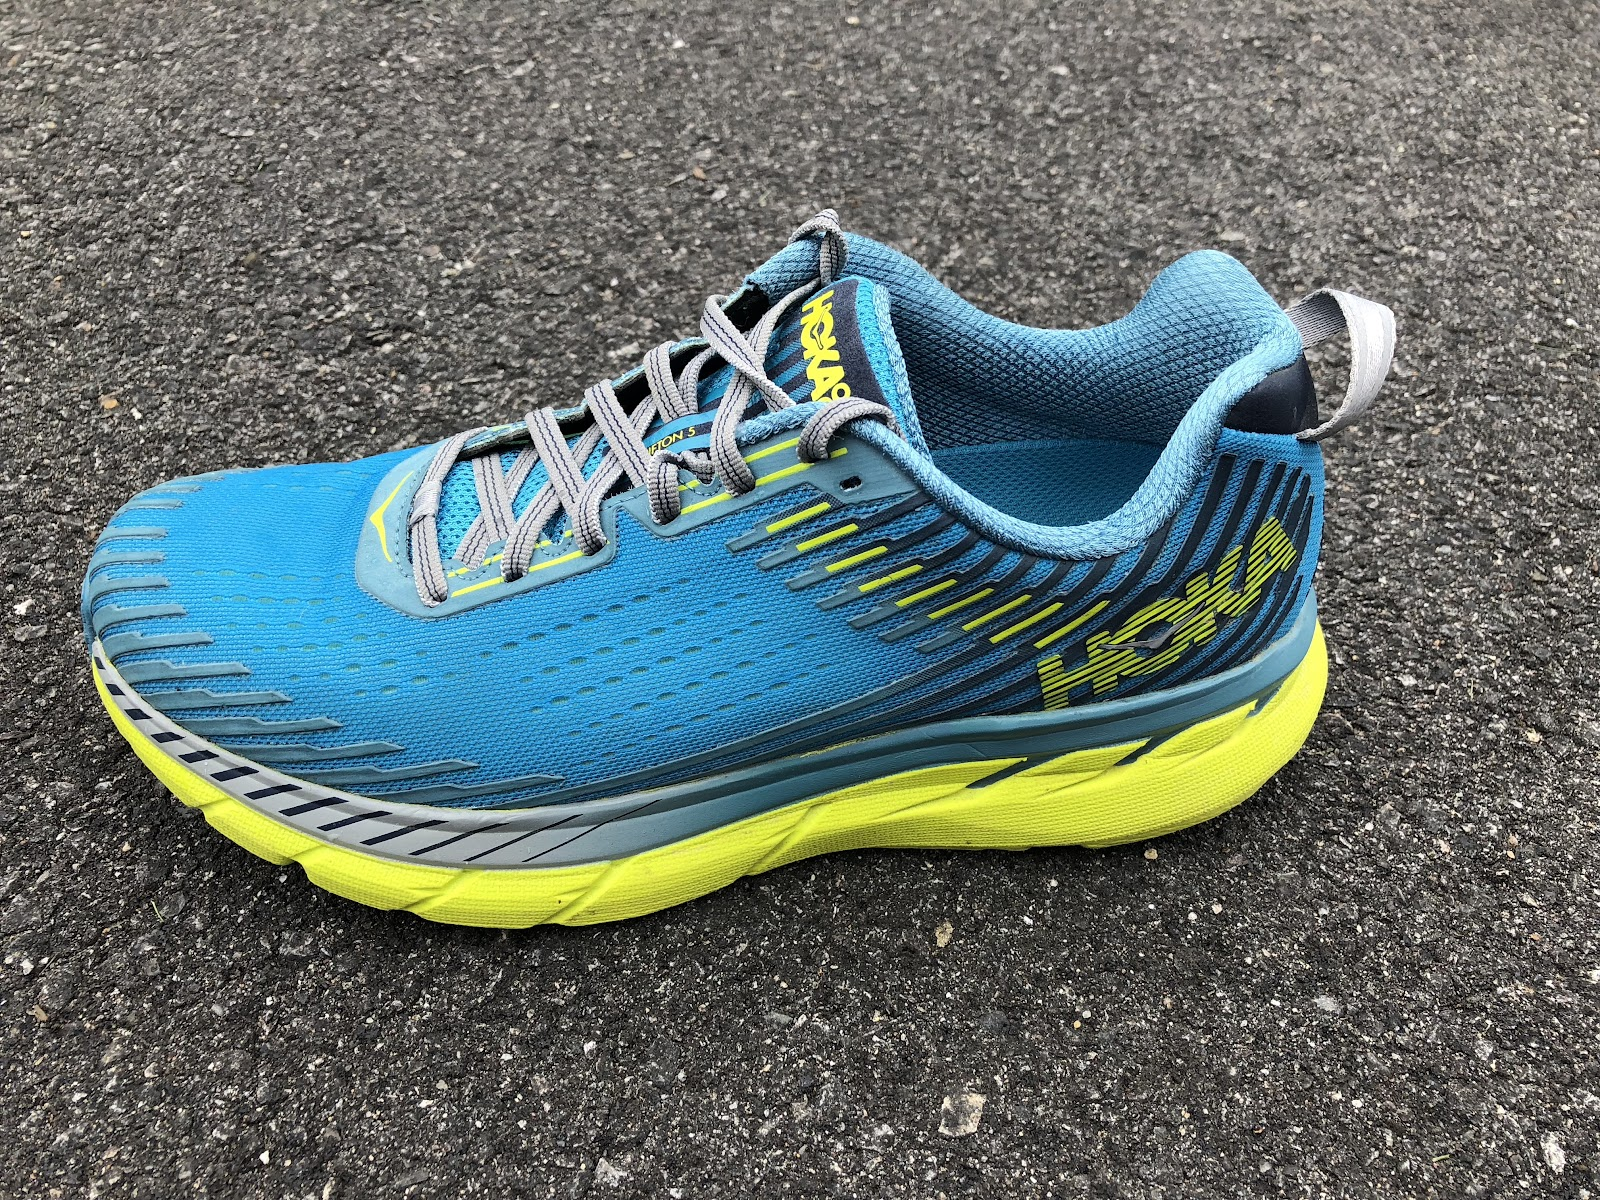 Road Trail Run  Hoka One One Clifton 5 Review  A new upper the big ... c4bef6aba9a